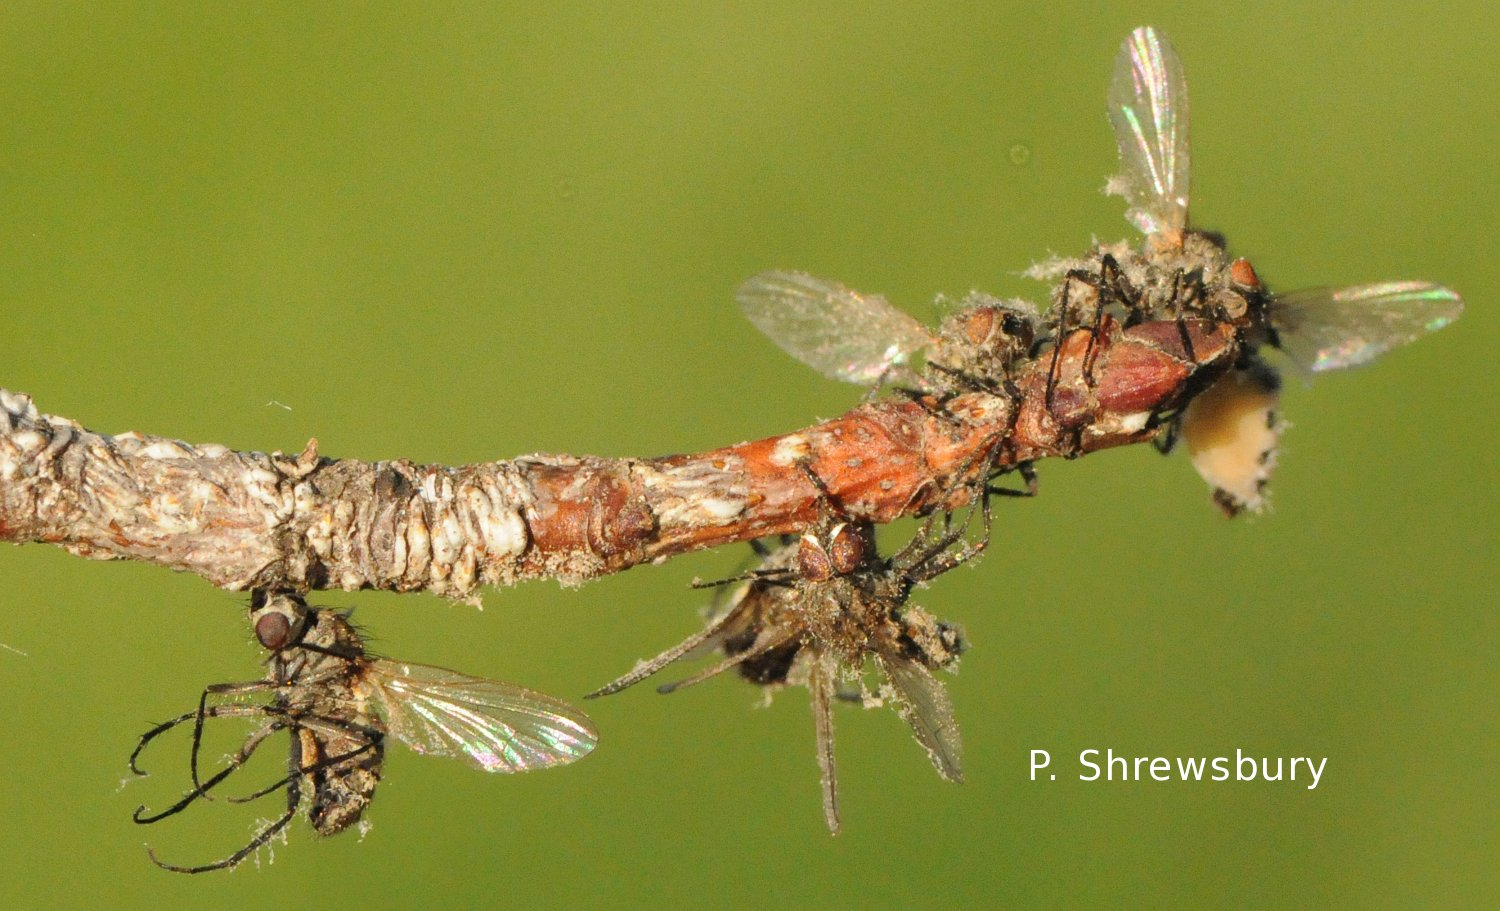 Dead seed corn maggot adults stuck to the tip of a tree branch.